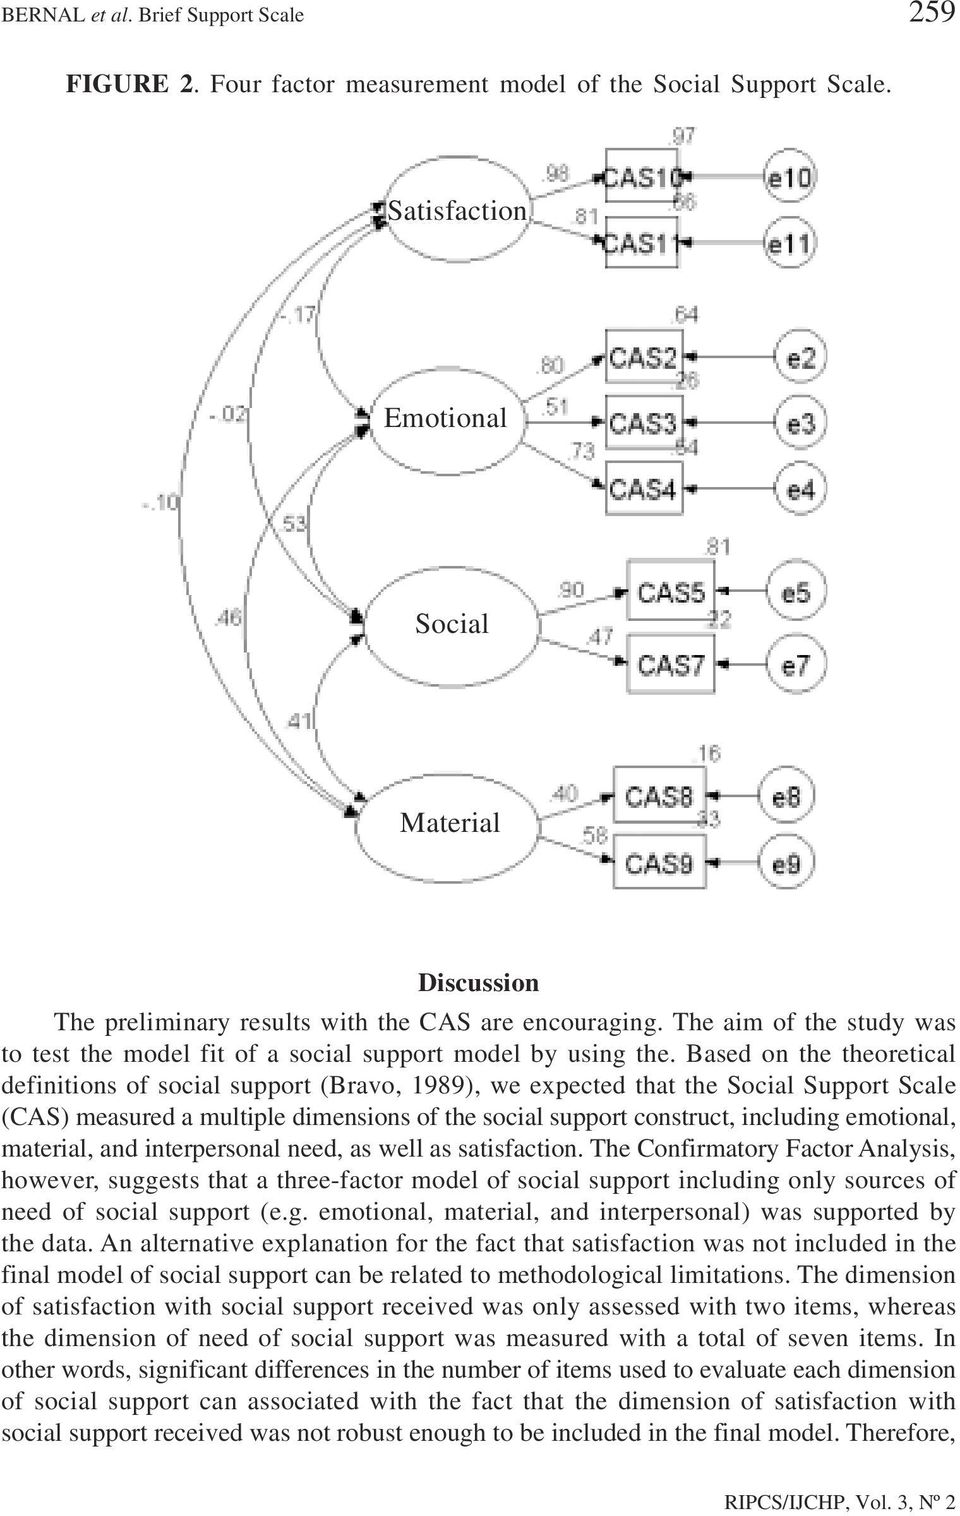 Based on the theoretical definitions of social support (Bravo, 1989), we expected that the Social Support Scale (CAS) measured a multiple dimensions of the social support construct, including